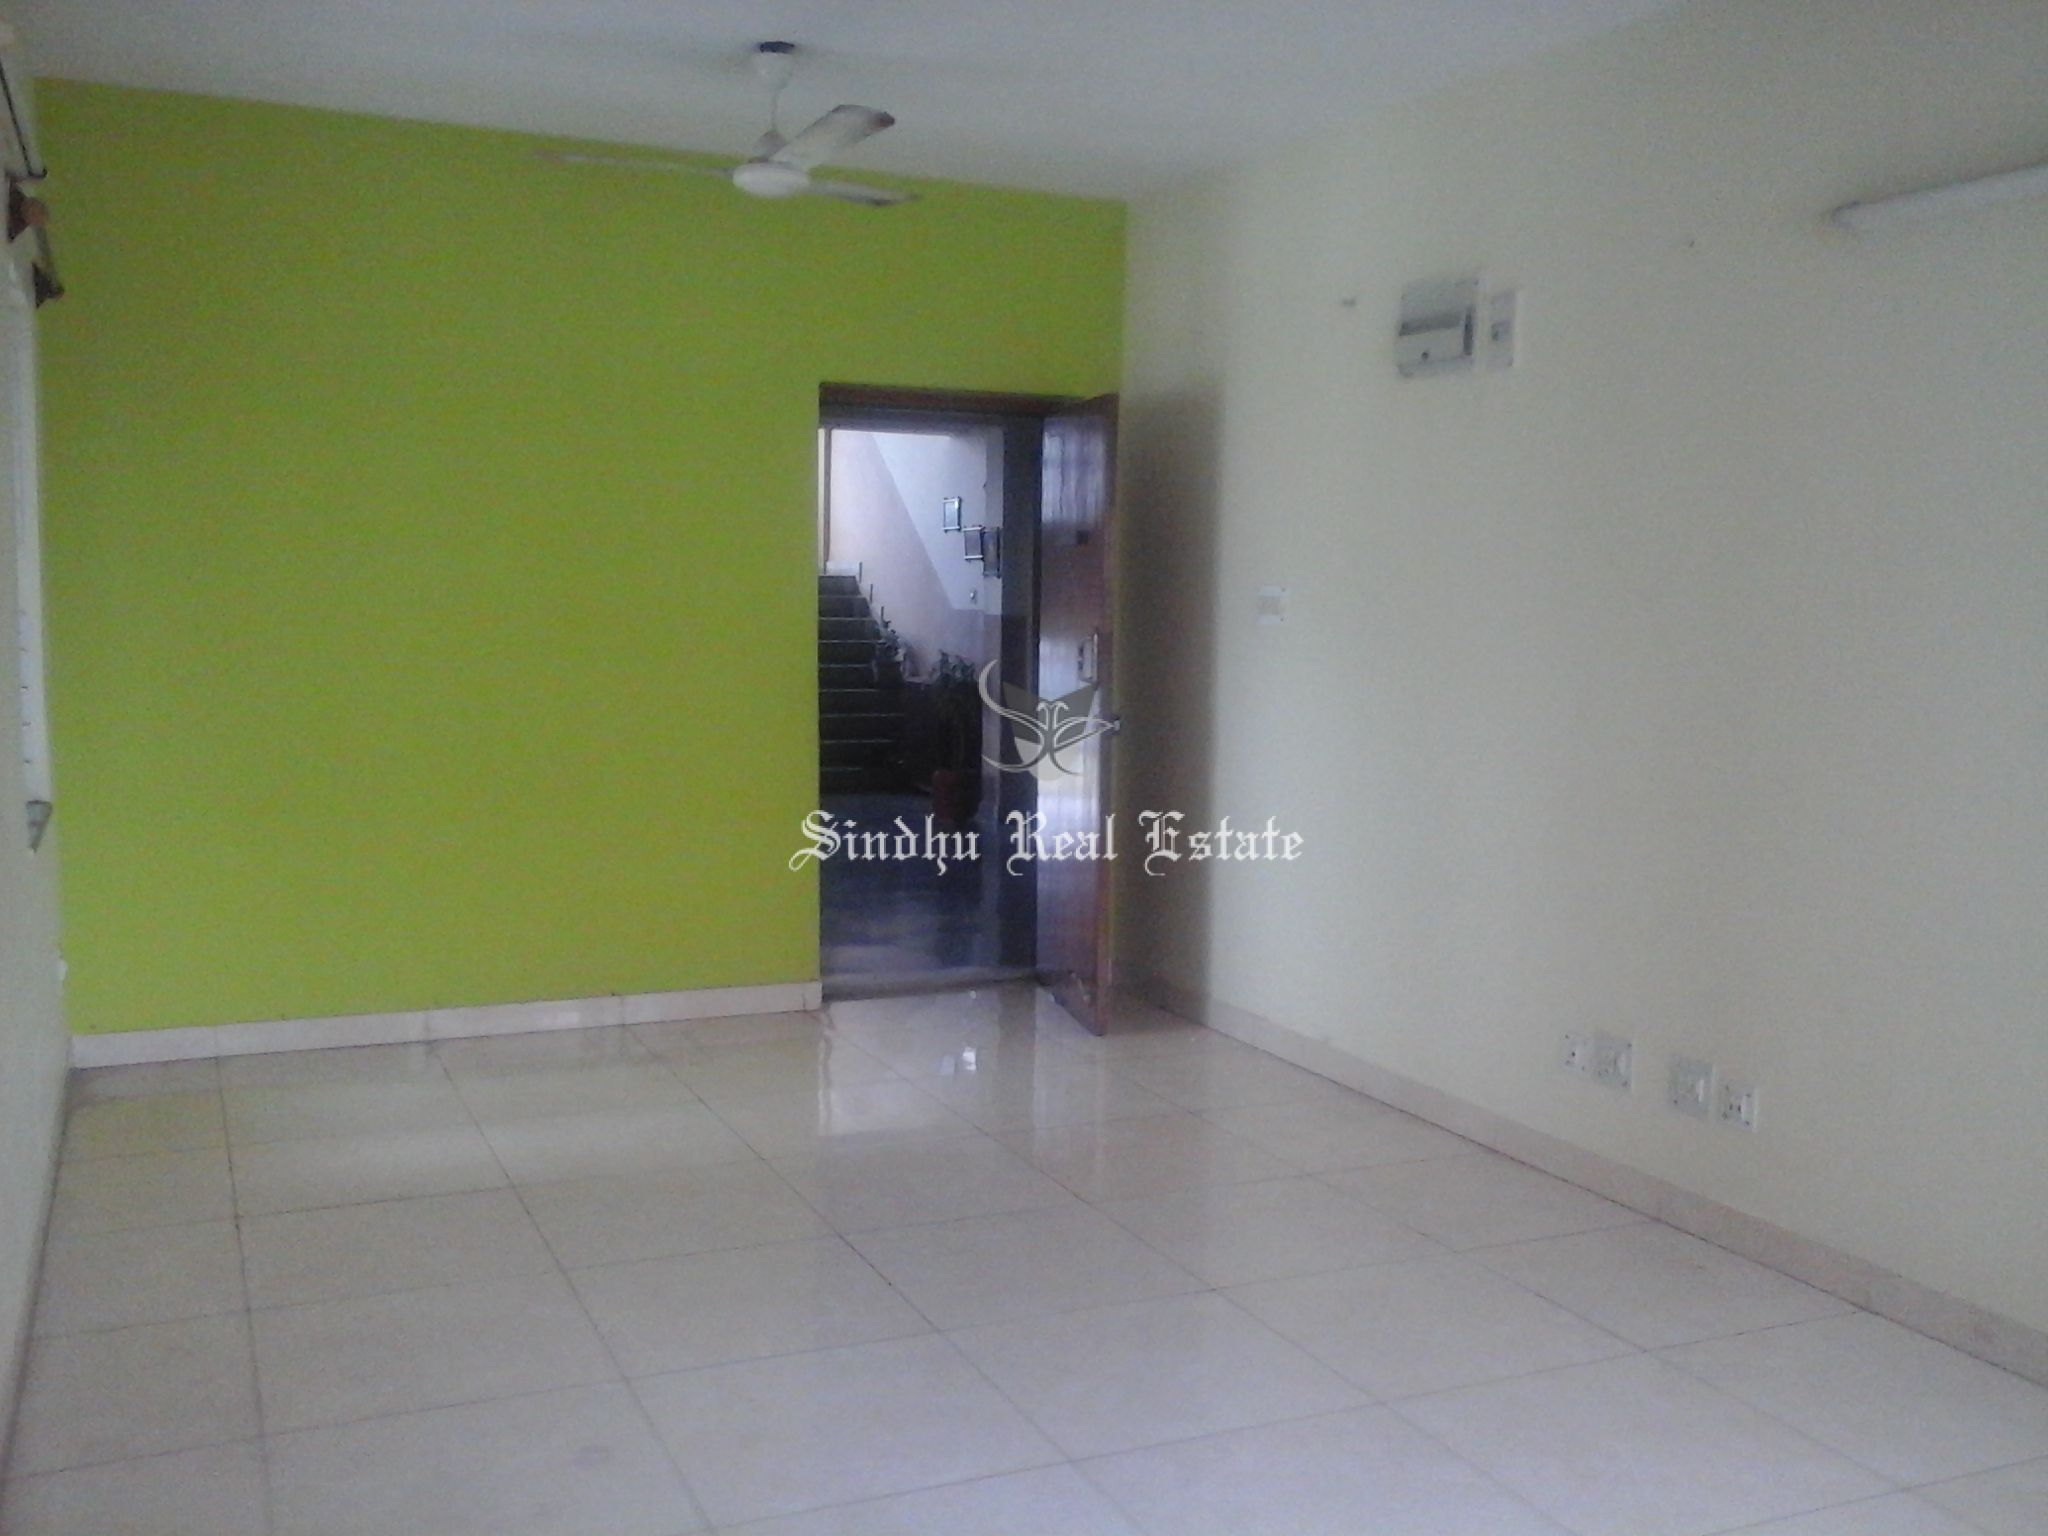 Residential flat for rent in saltlake